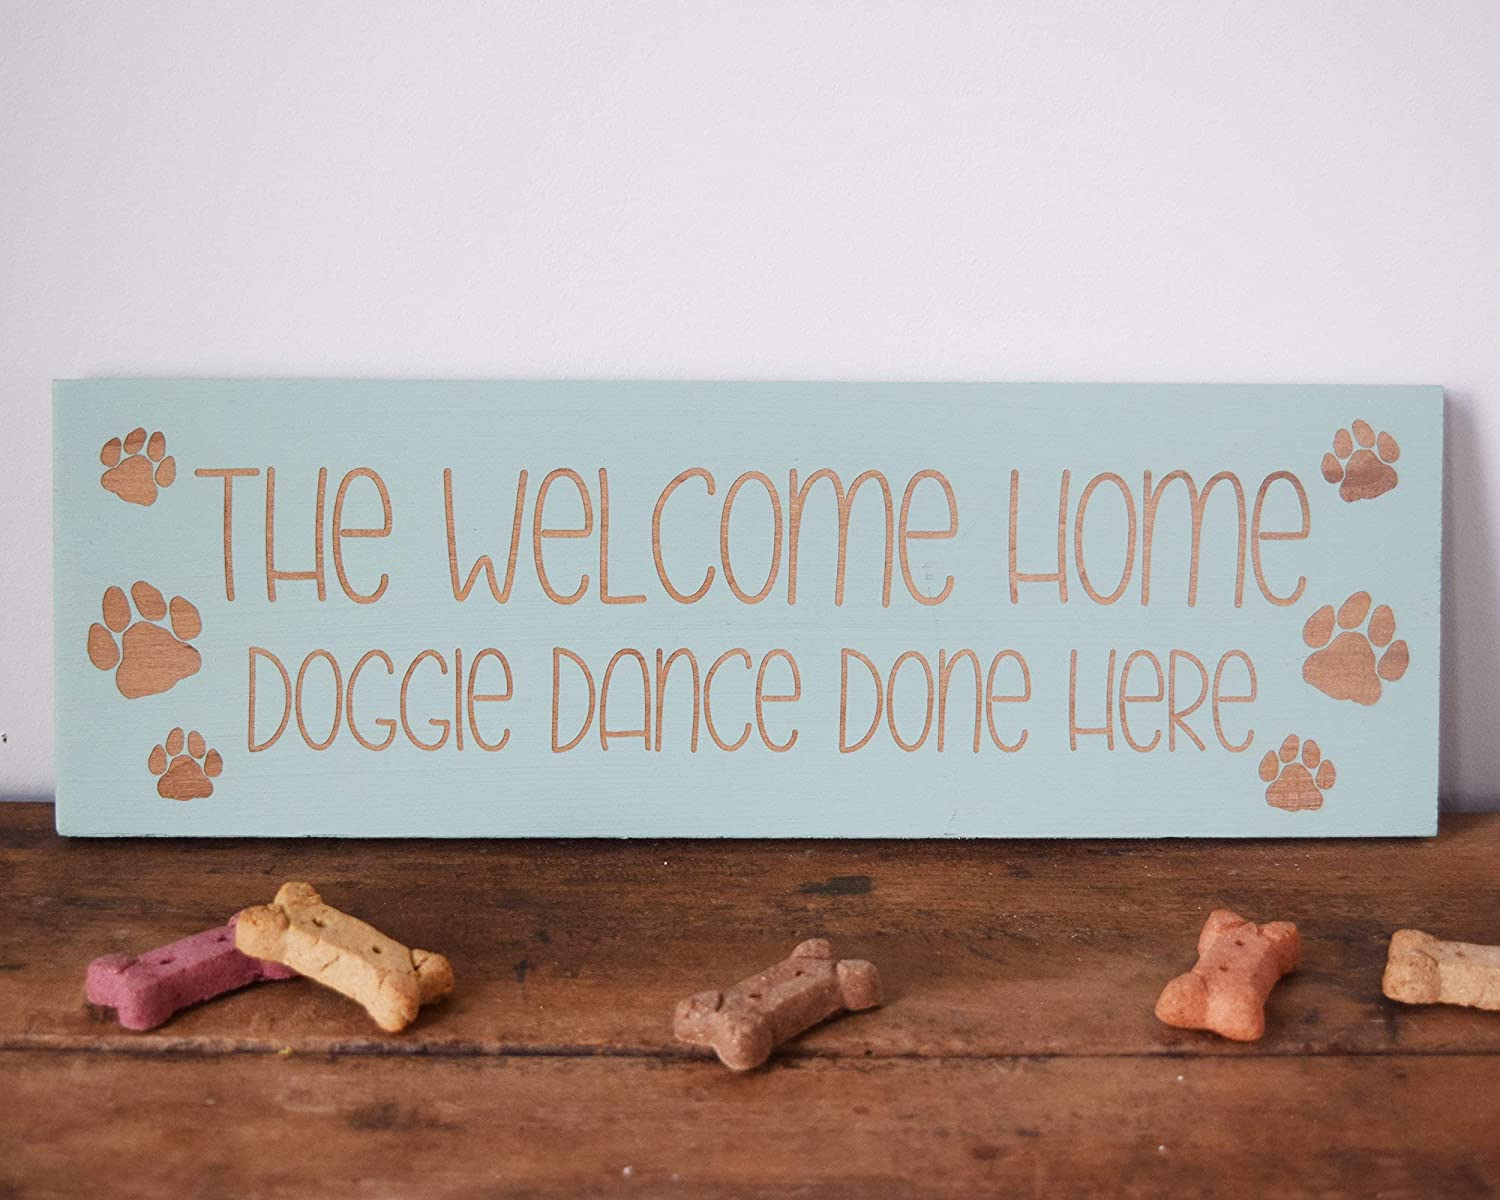 The Welcome Home Doggie Dance Done Here Wood Framed Sign Wall Hanging Signs, Farmhouse Family Wall Art Sign for Home Decor, Living Room and Kitchen, 6x24inch